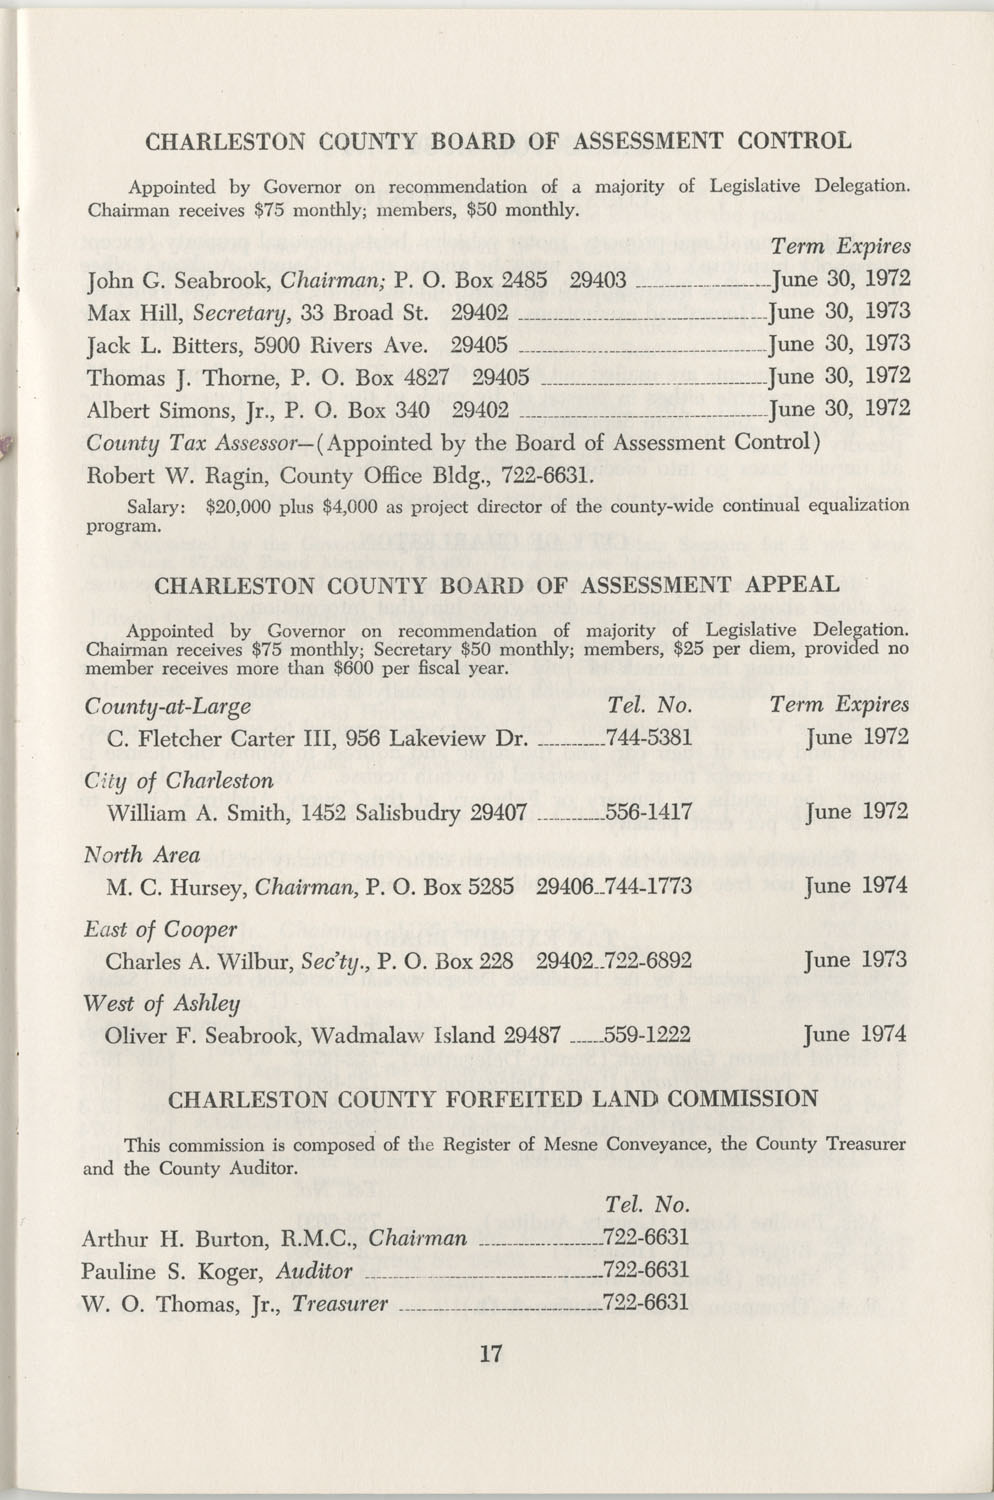 Directory of Public Officials, 1972-1973, Page 17